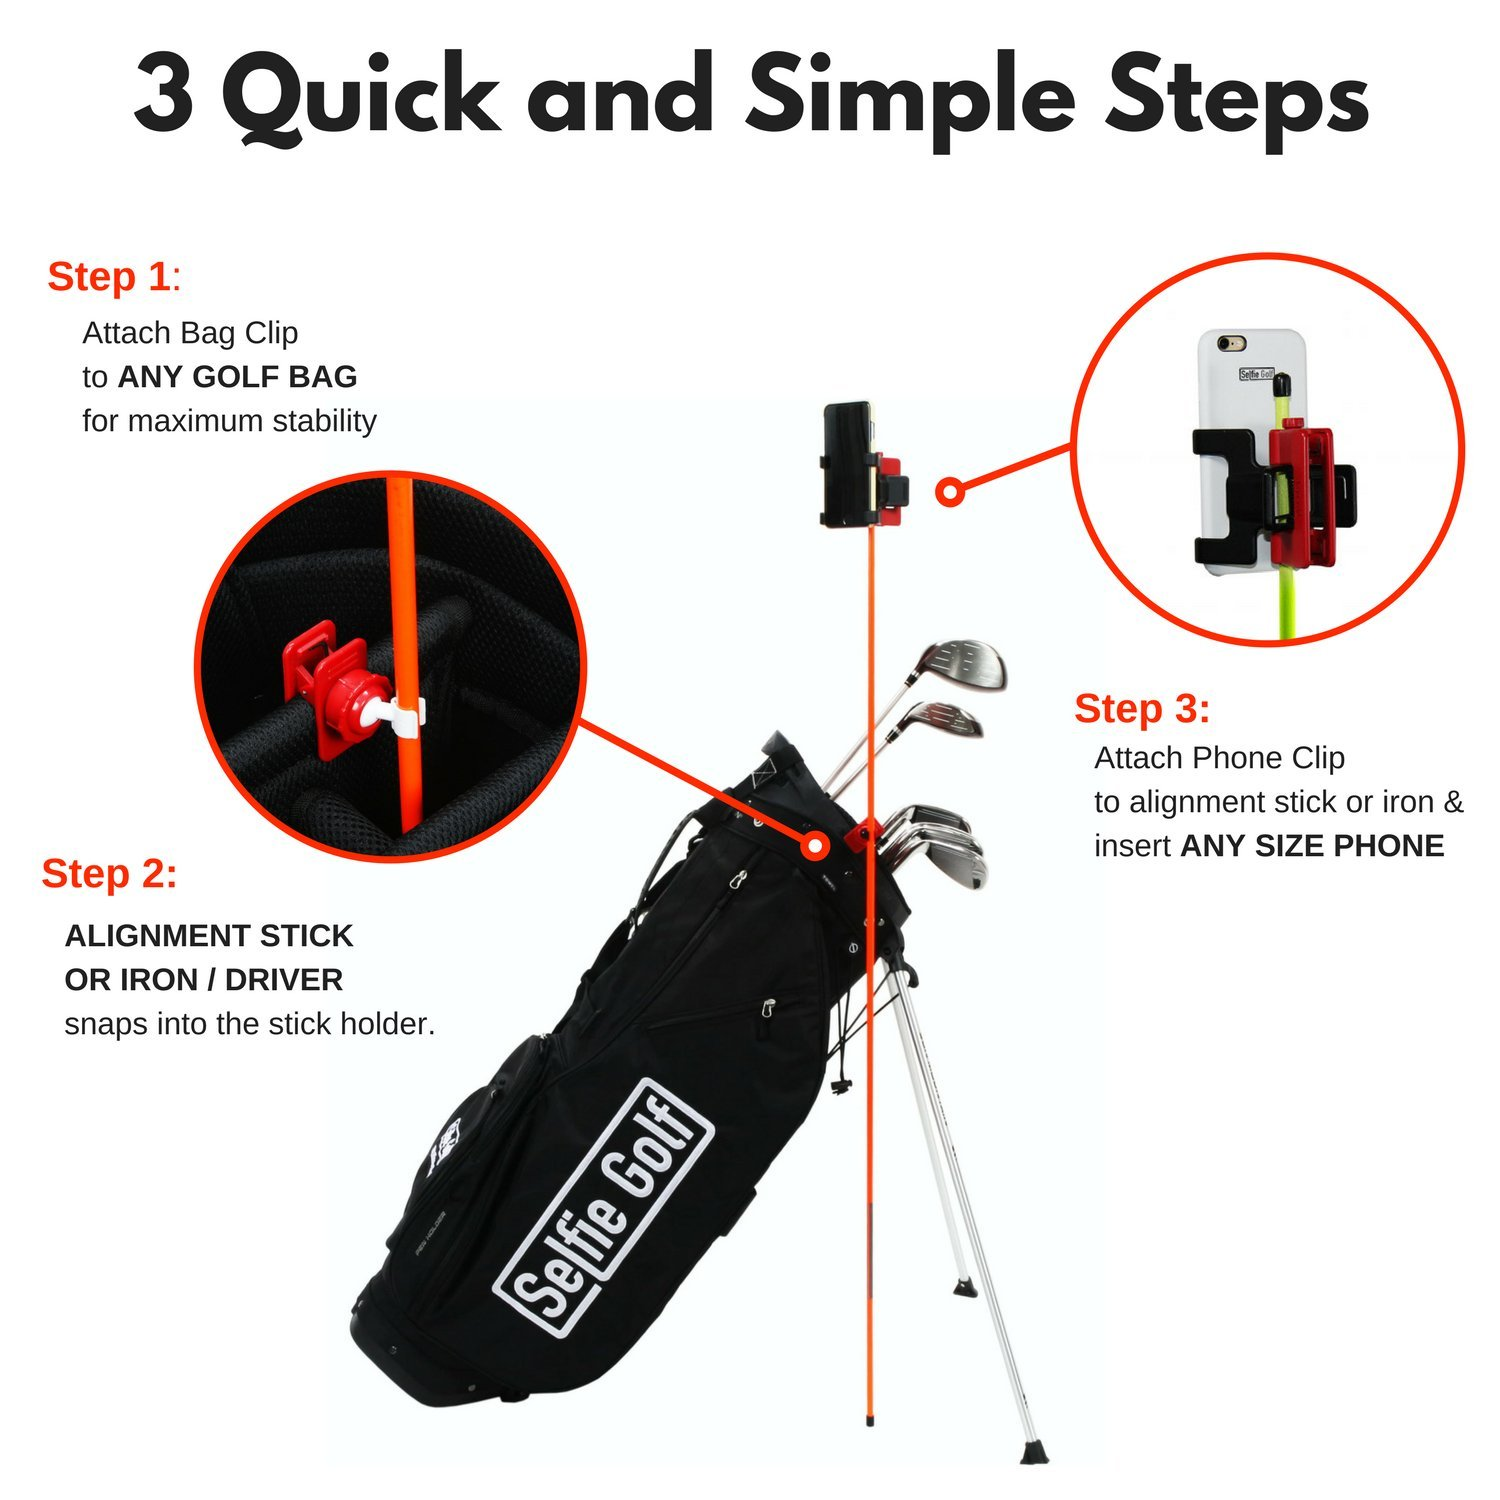 SelfieGolf Record Golf Swing - Cell Phone Clip Holder and Training Aid by TM - Golf Accessories | The Winner of The PGA Best of 2017 | Compatible with Any Smart Phone (Red/White) by Selfie Golf (Image #4)